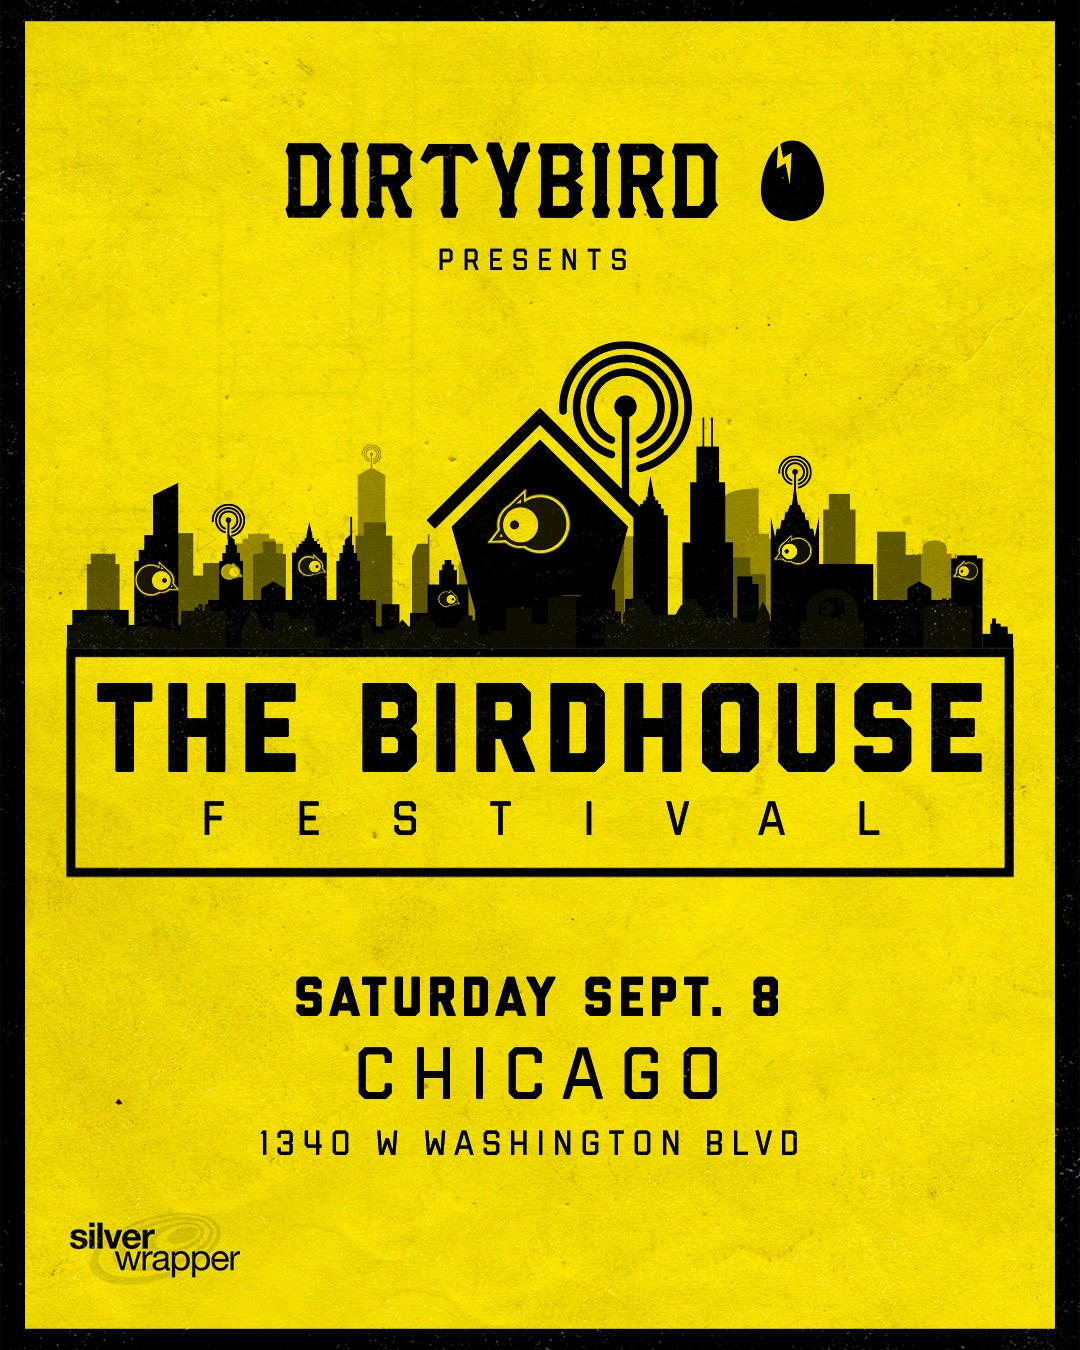 The Birdhouse Festival Chicago - Facebook Vertical - 1080x1350 - v1.jpg